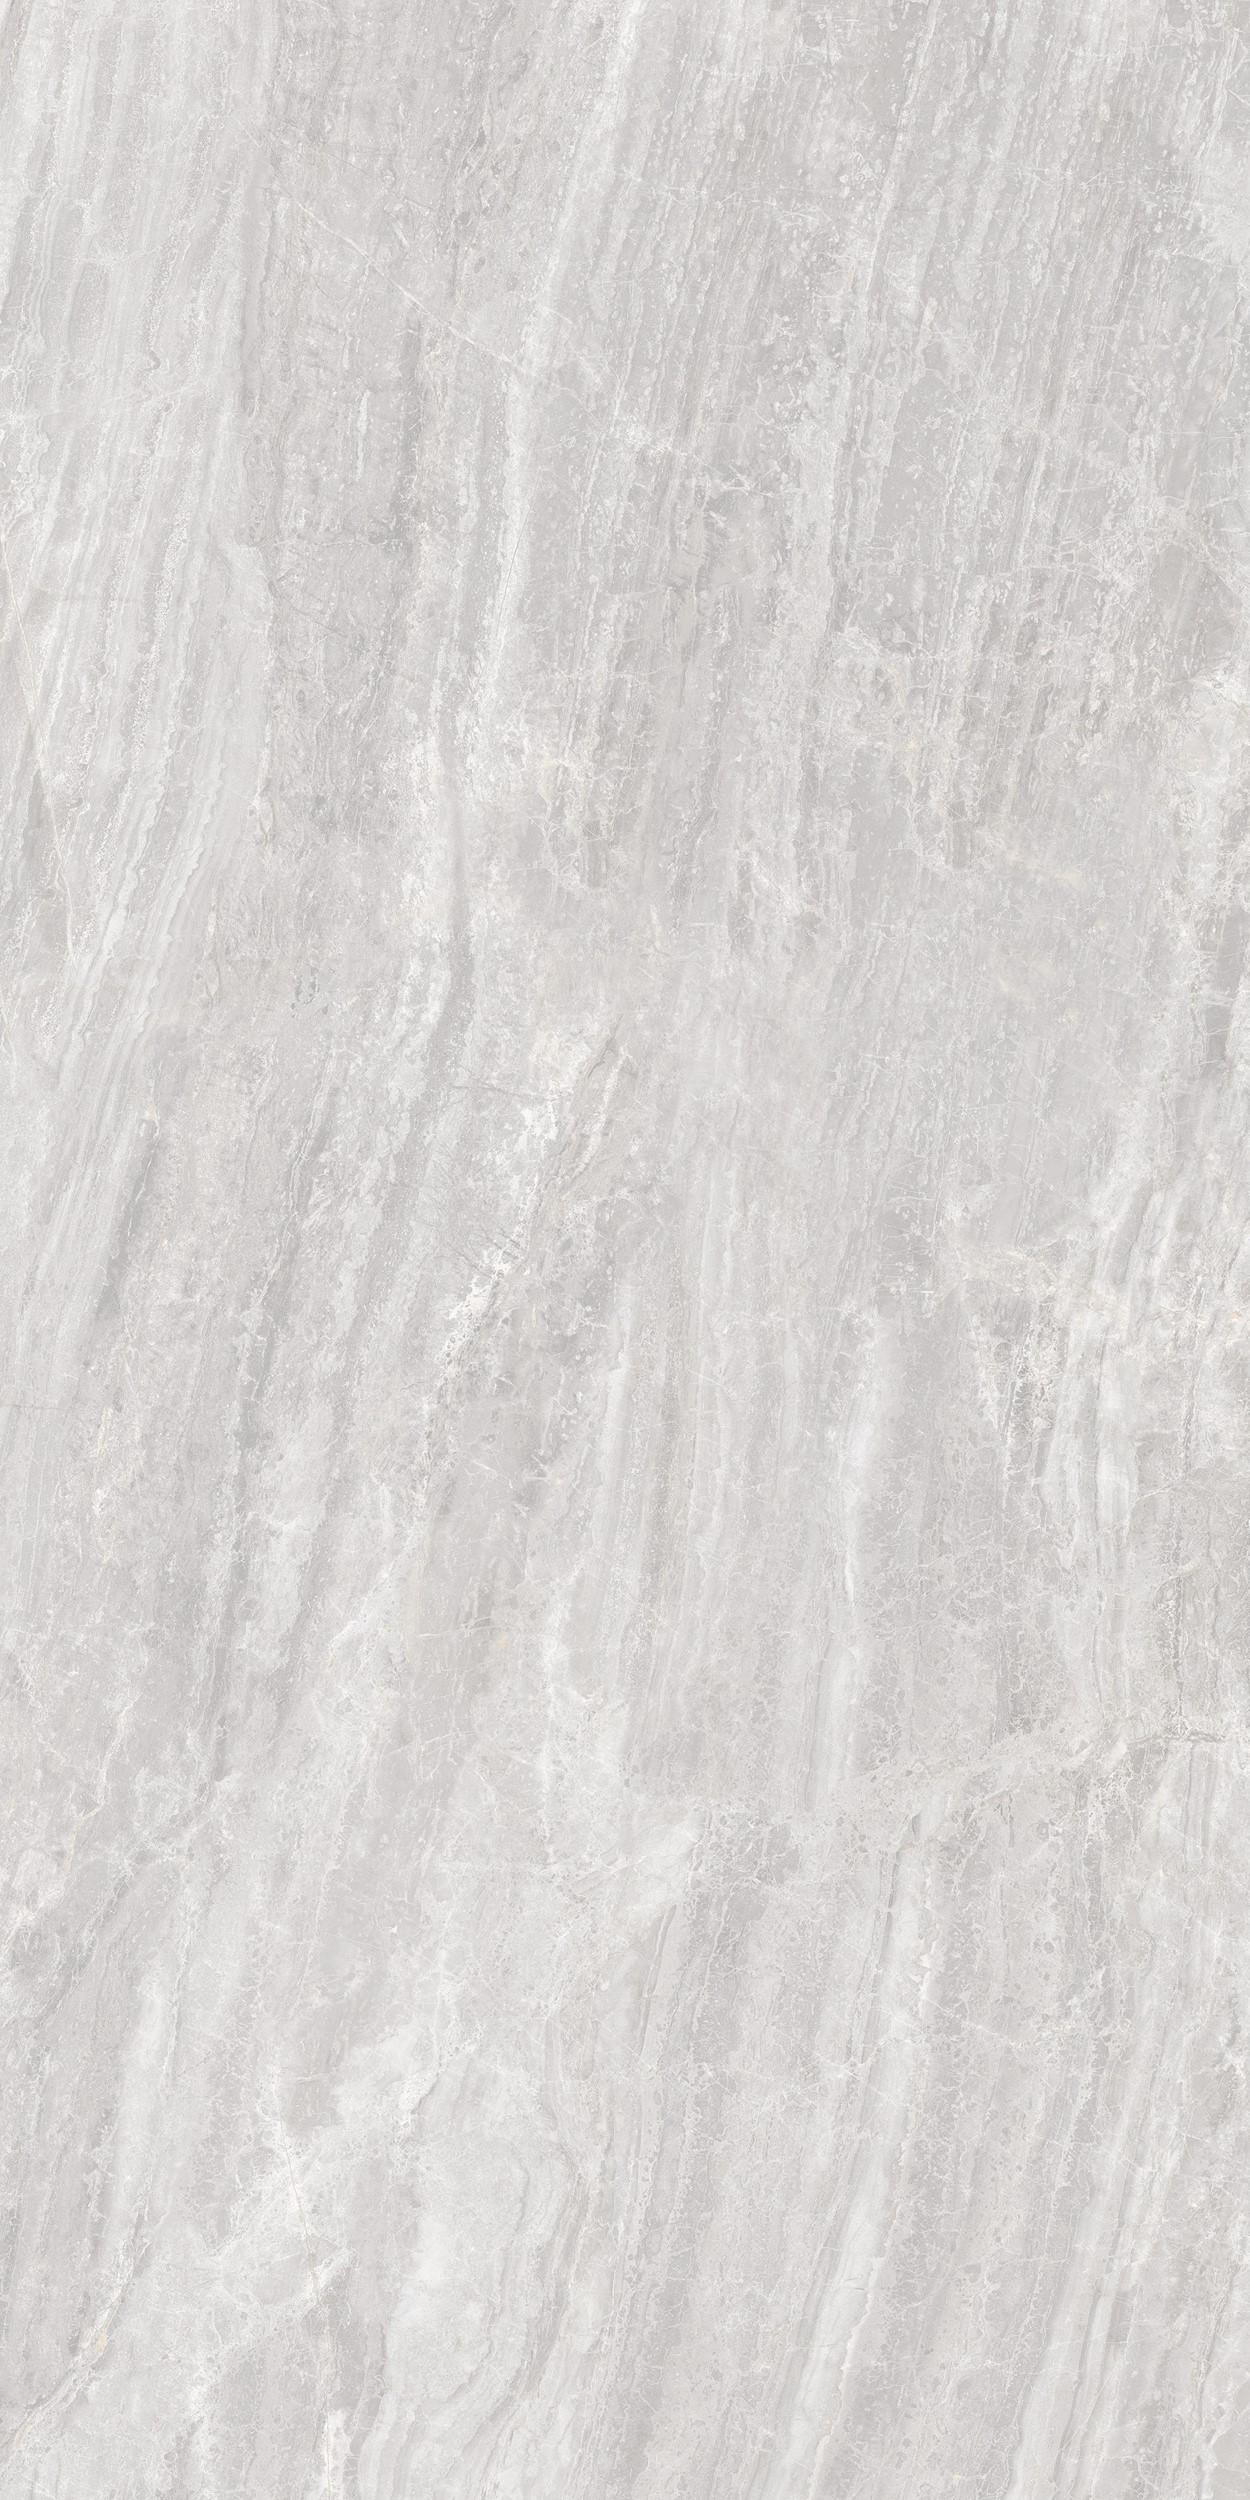 24 X 48 Cosmic Grey HIGH POLISHED Rectified Porcelain Tile